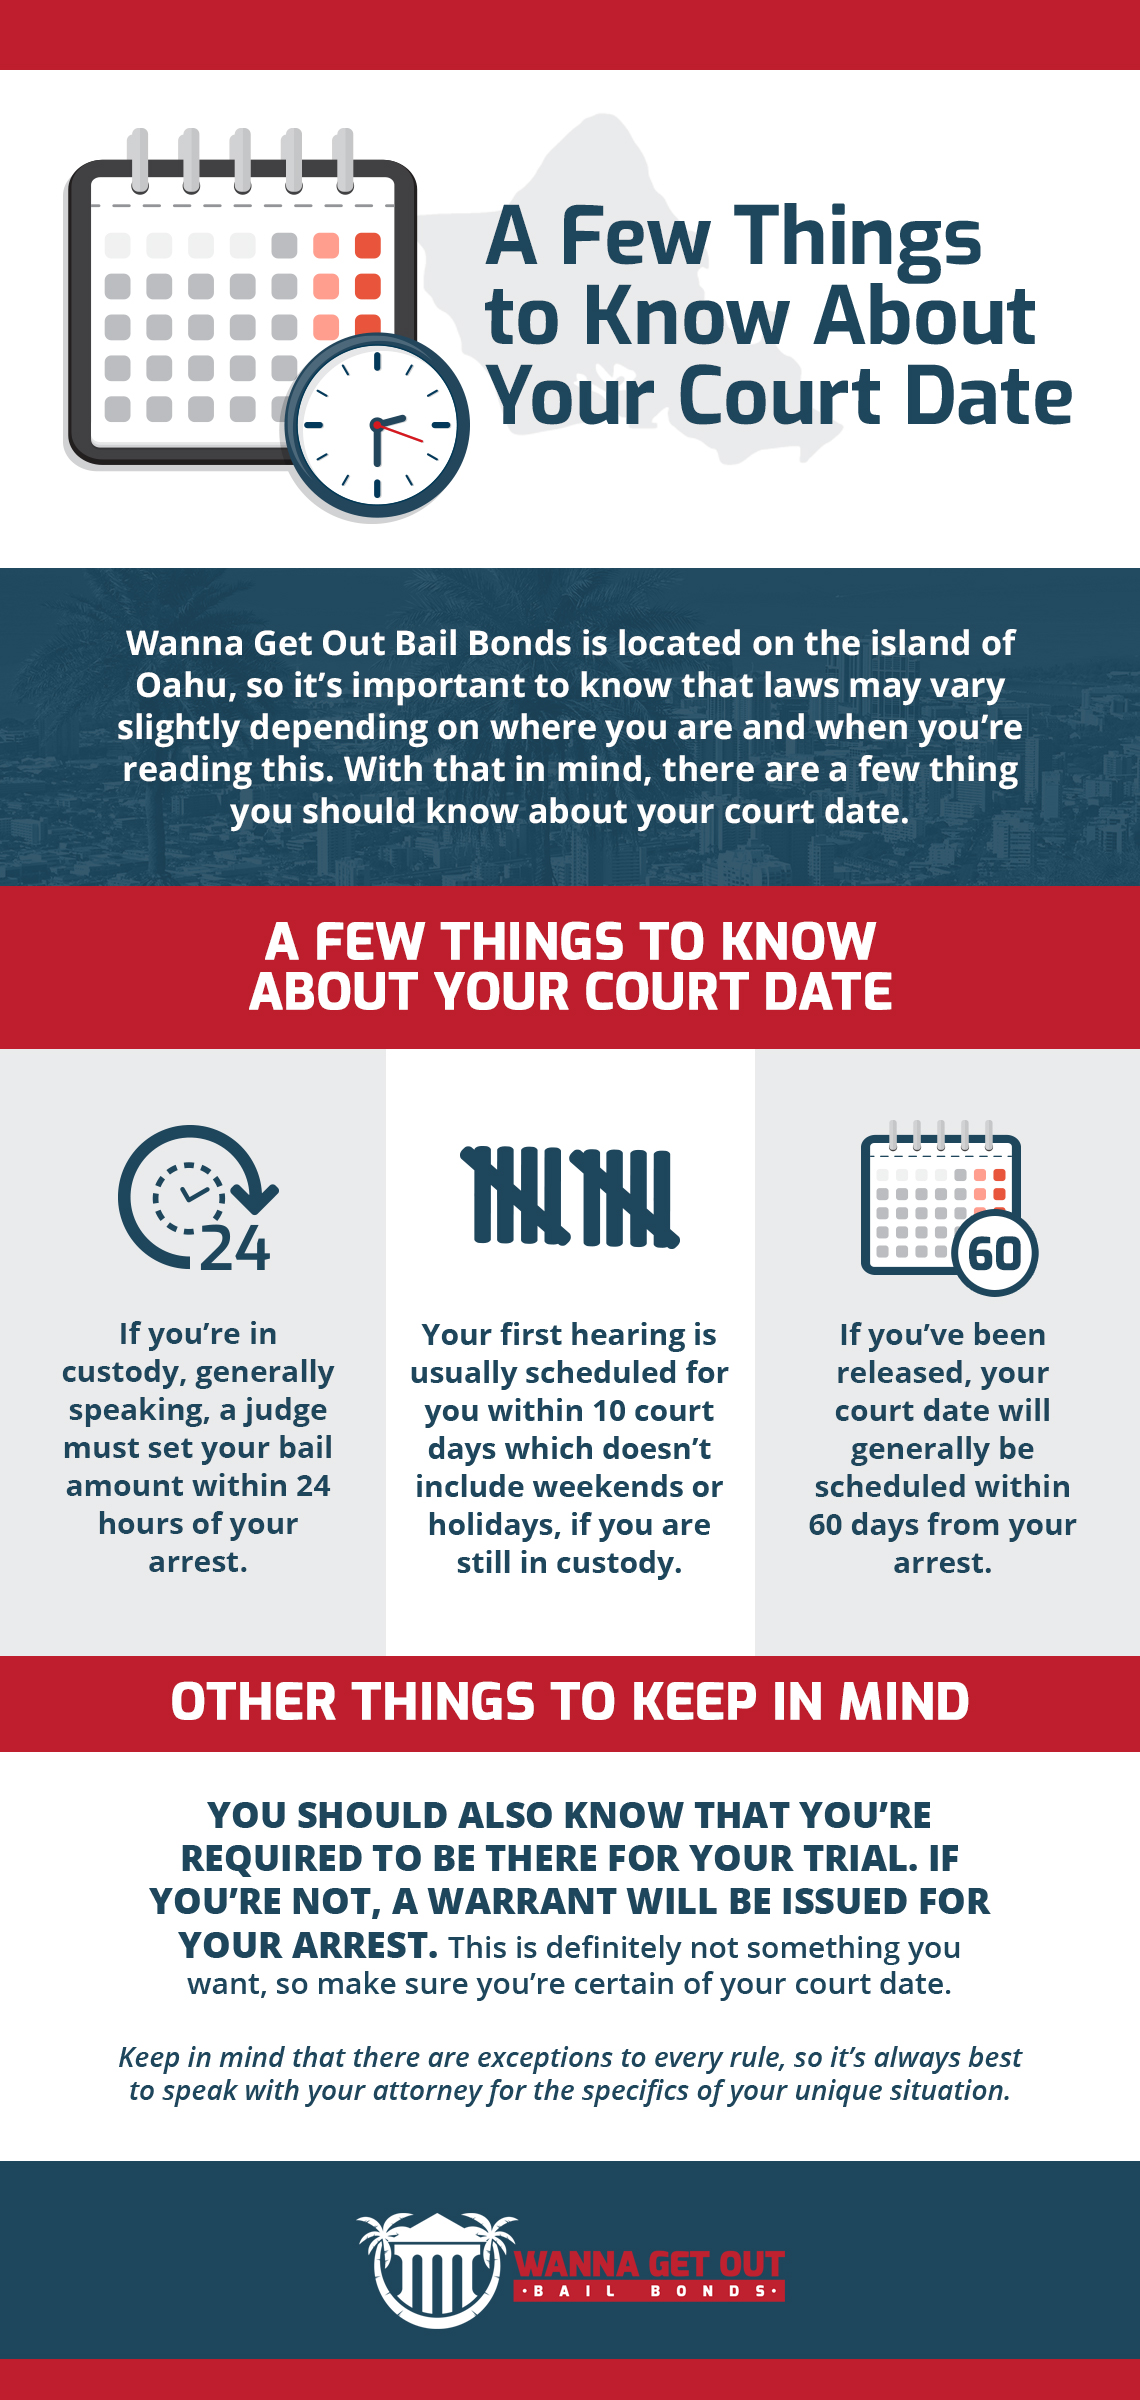 A Few Things to Know About Your Court Date